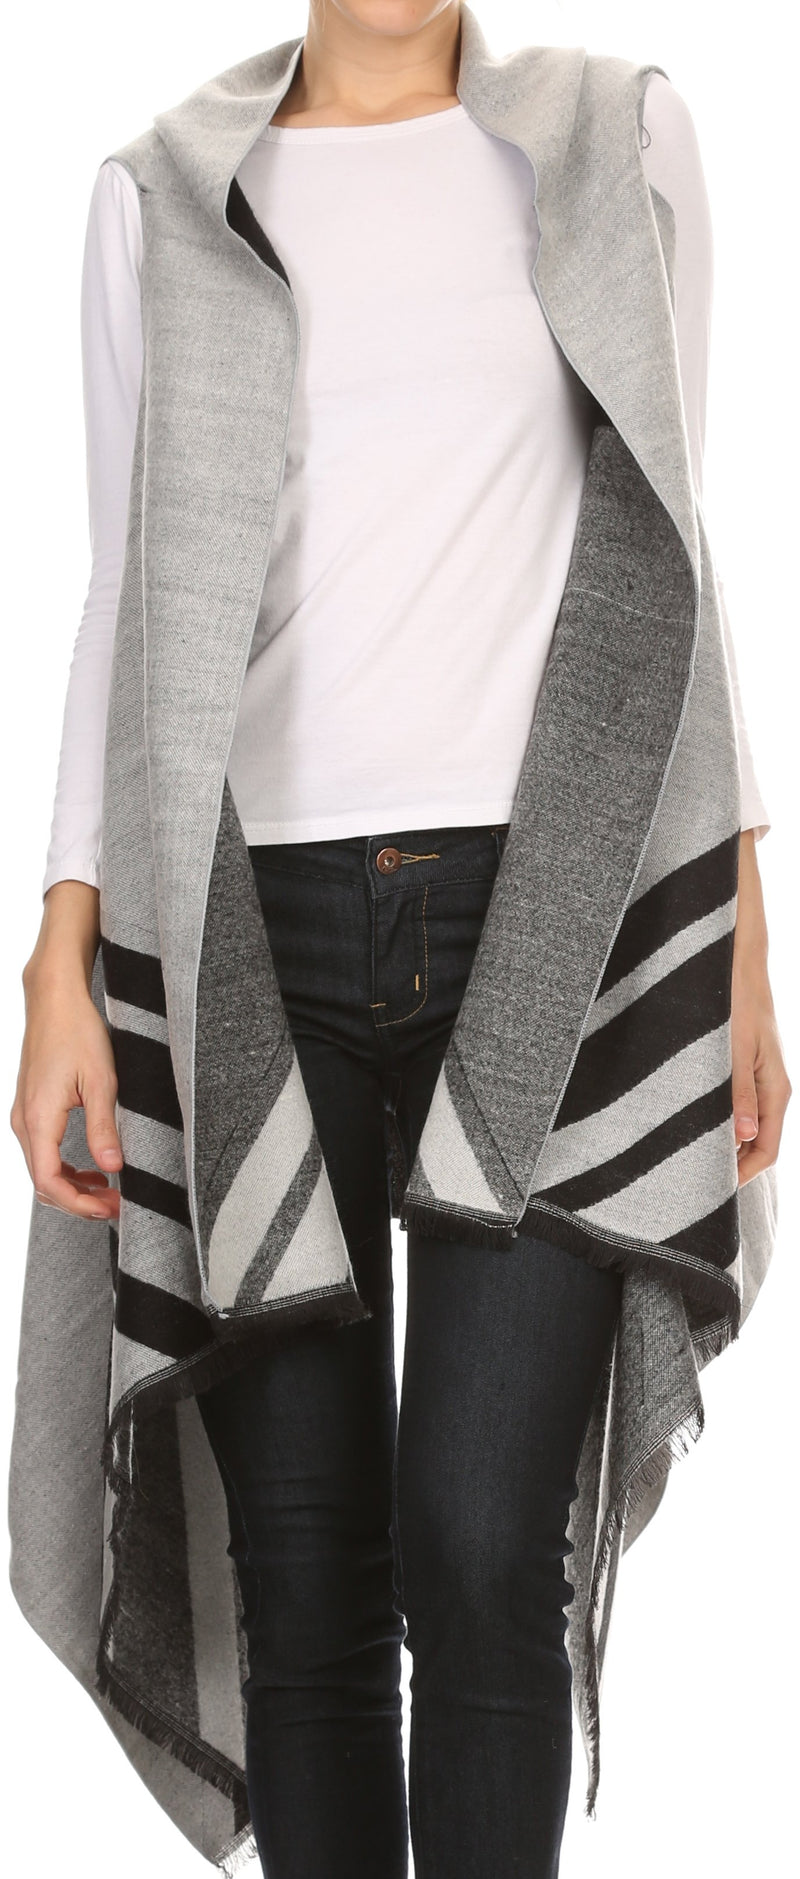 Sakkas Janeek Thick Warm Long Tapered Striped Multi Color Block Poncho Cape Wrap